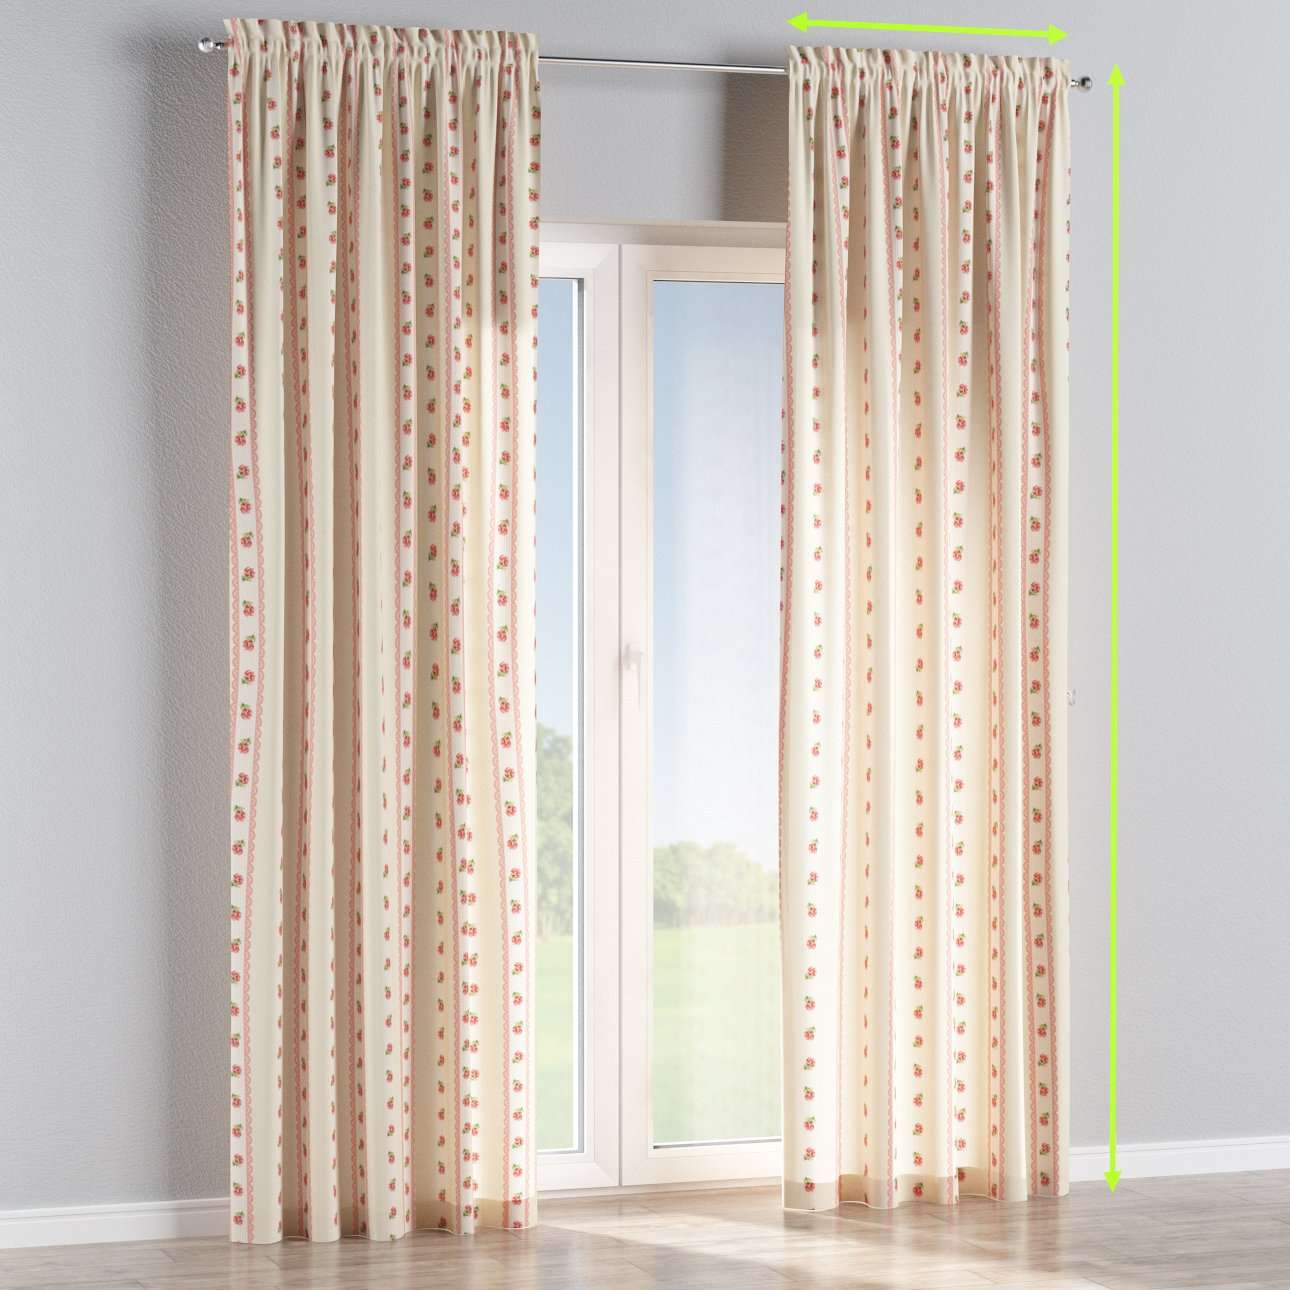 Slot and frill lined curtains in collection Ashley, fabric: 137-48